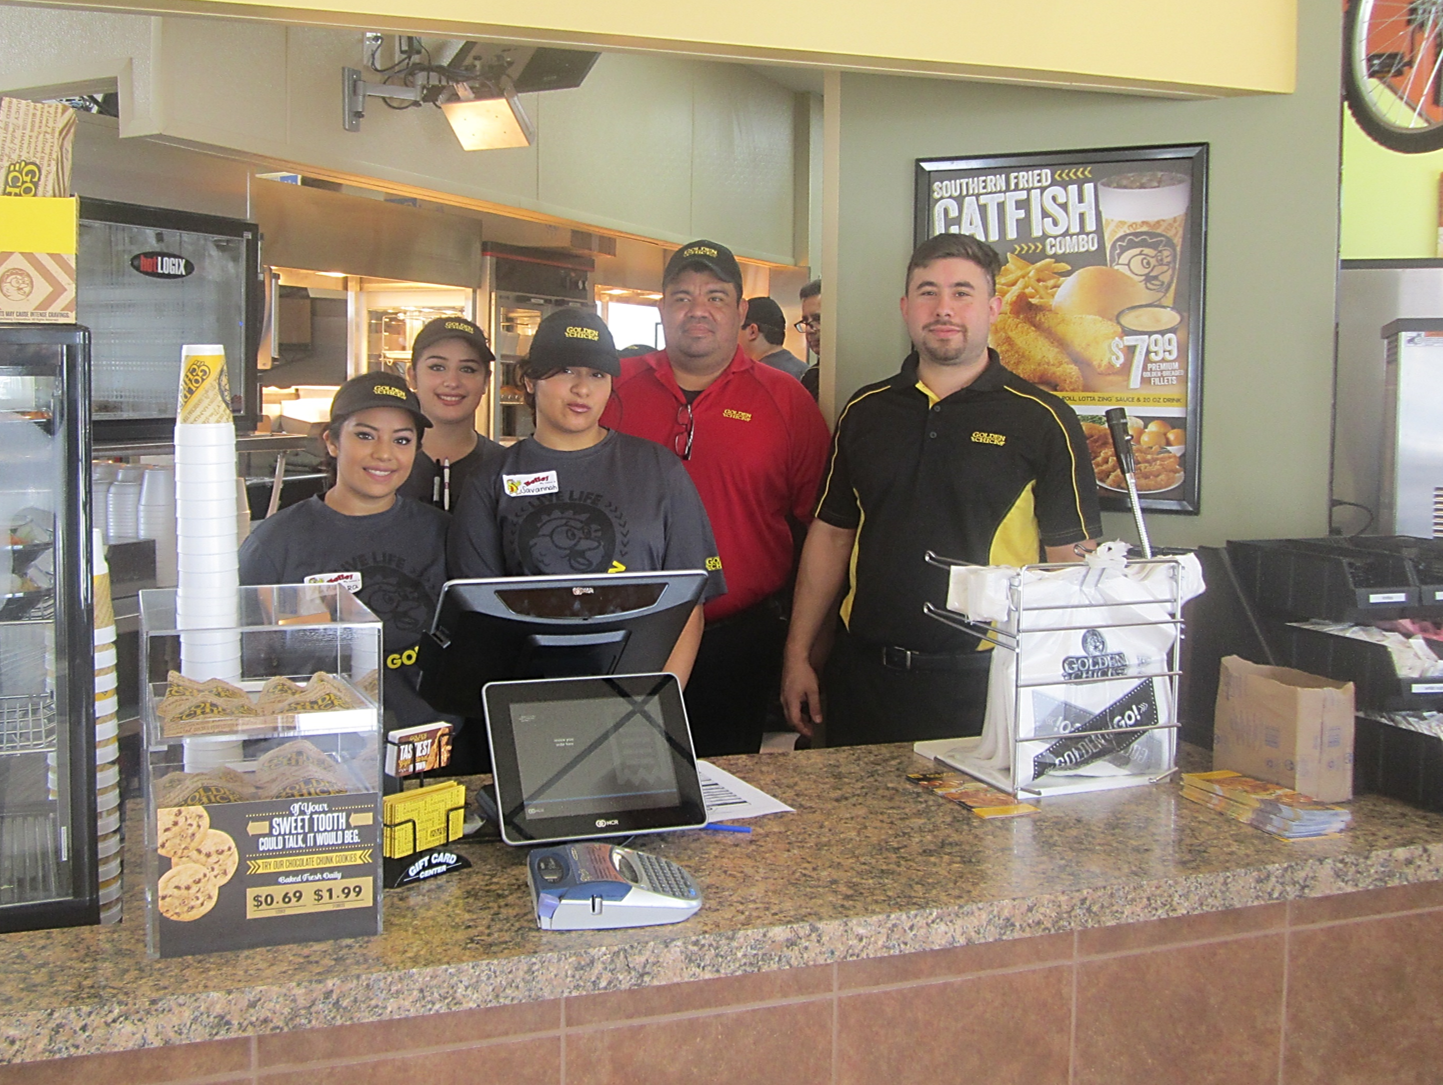 Golden Chick storefront.  Your local Golden Chick fast food restaurant in San Juan, Texas